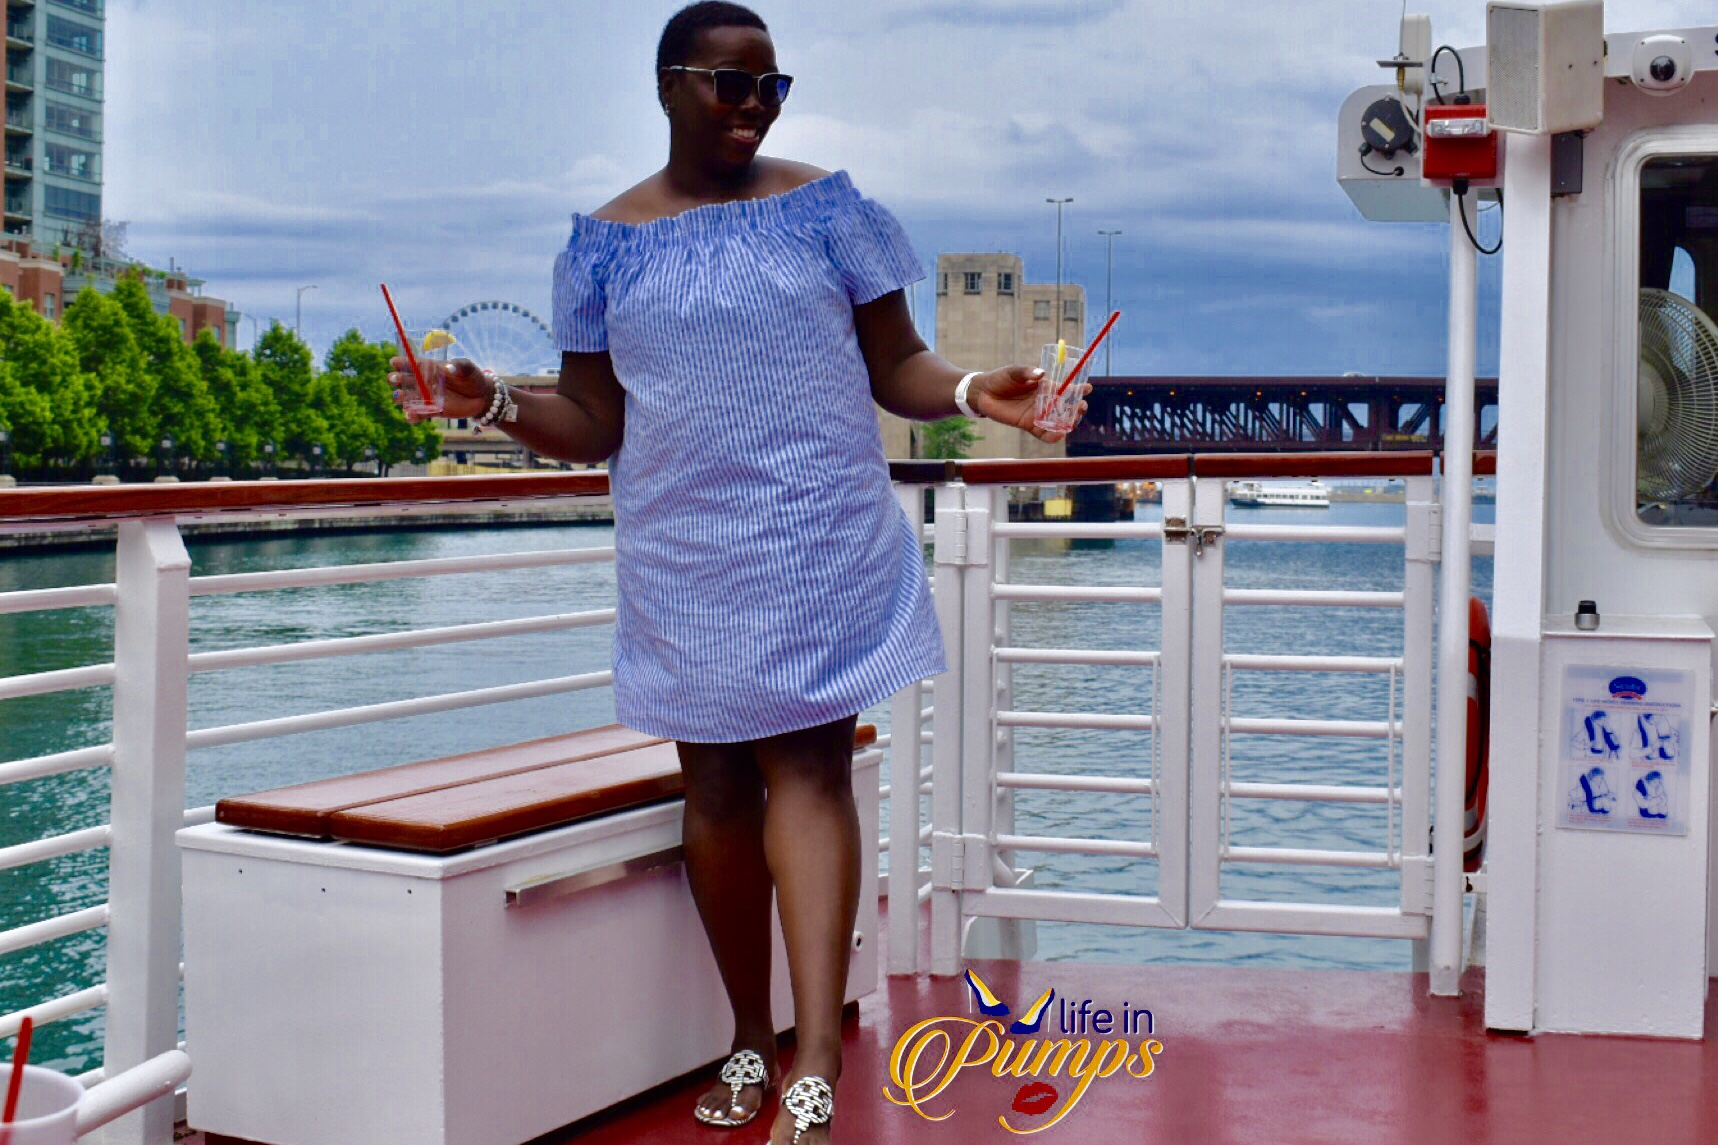 shoreline cruise, chicago, life in pumps, #choosechicago, #shorelineboattour